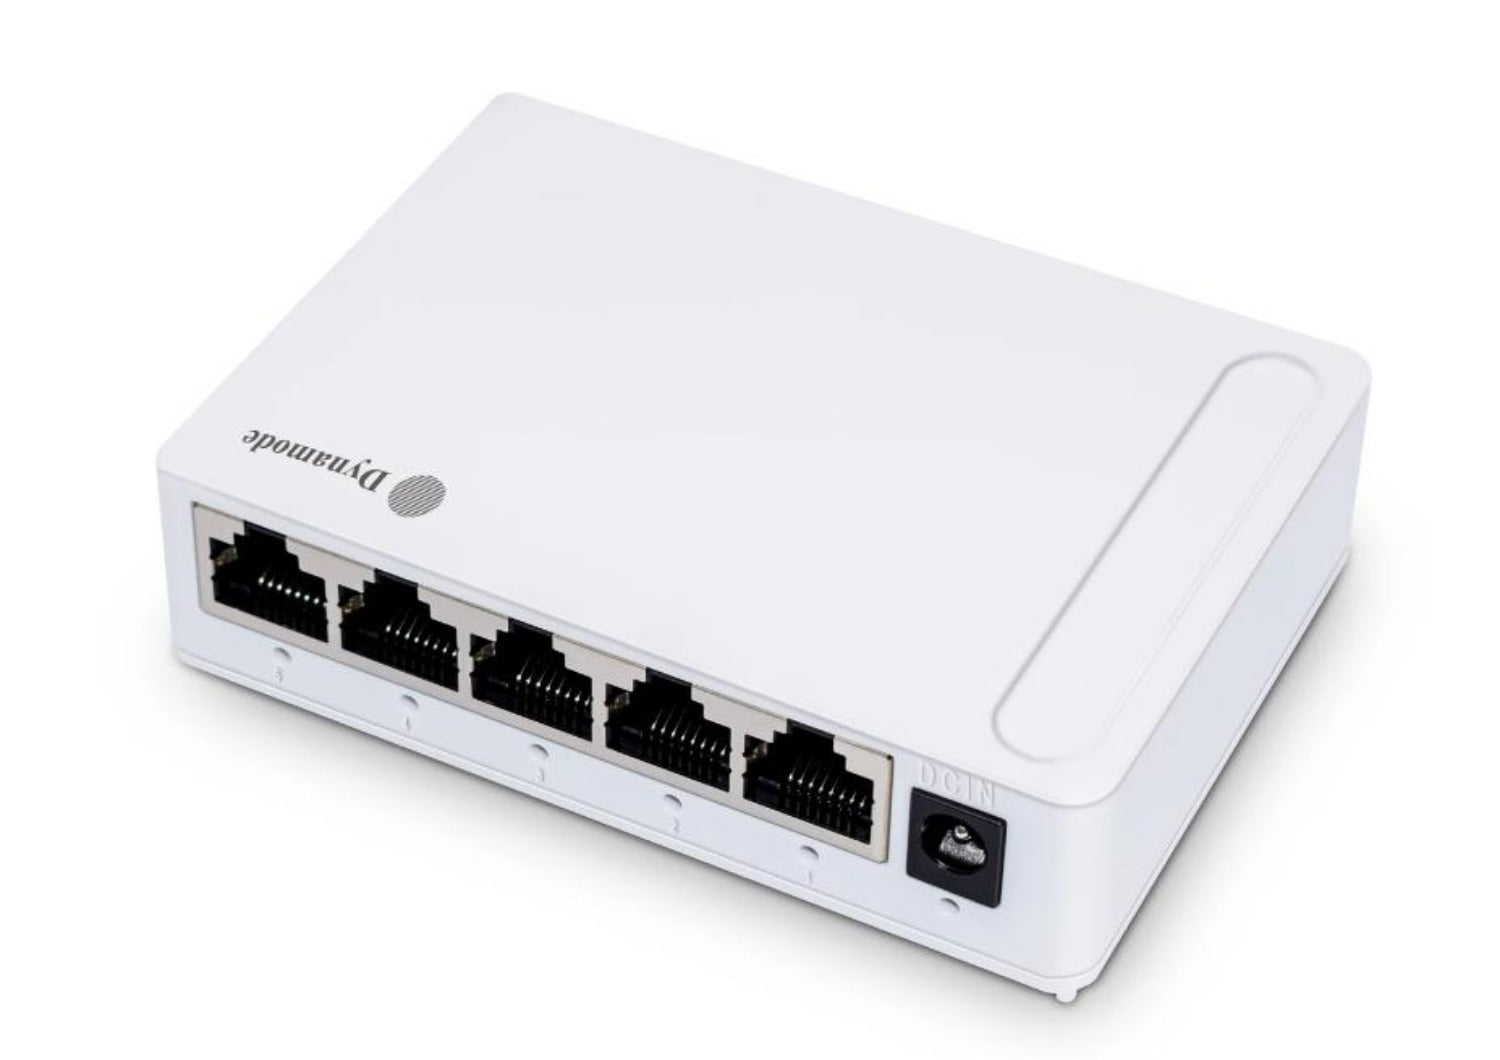 Dynamode SWG50010-D 5 Port Gigabit Ethernet Switch